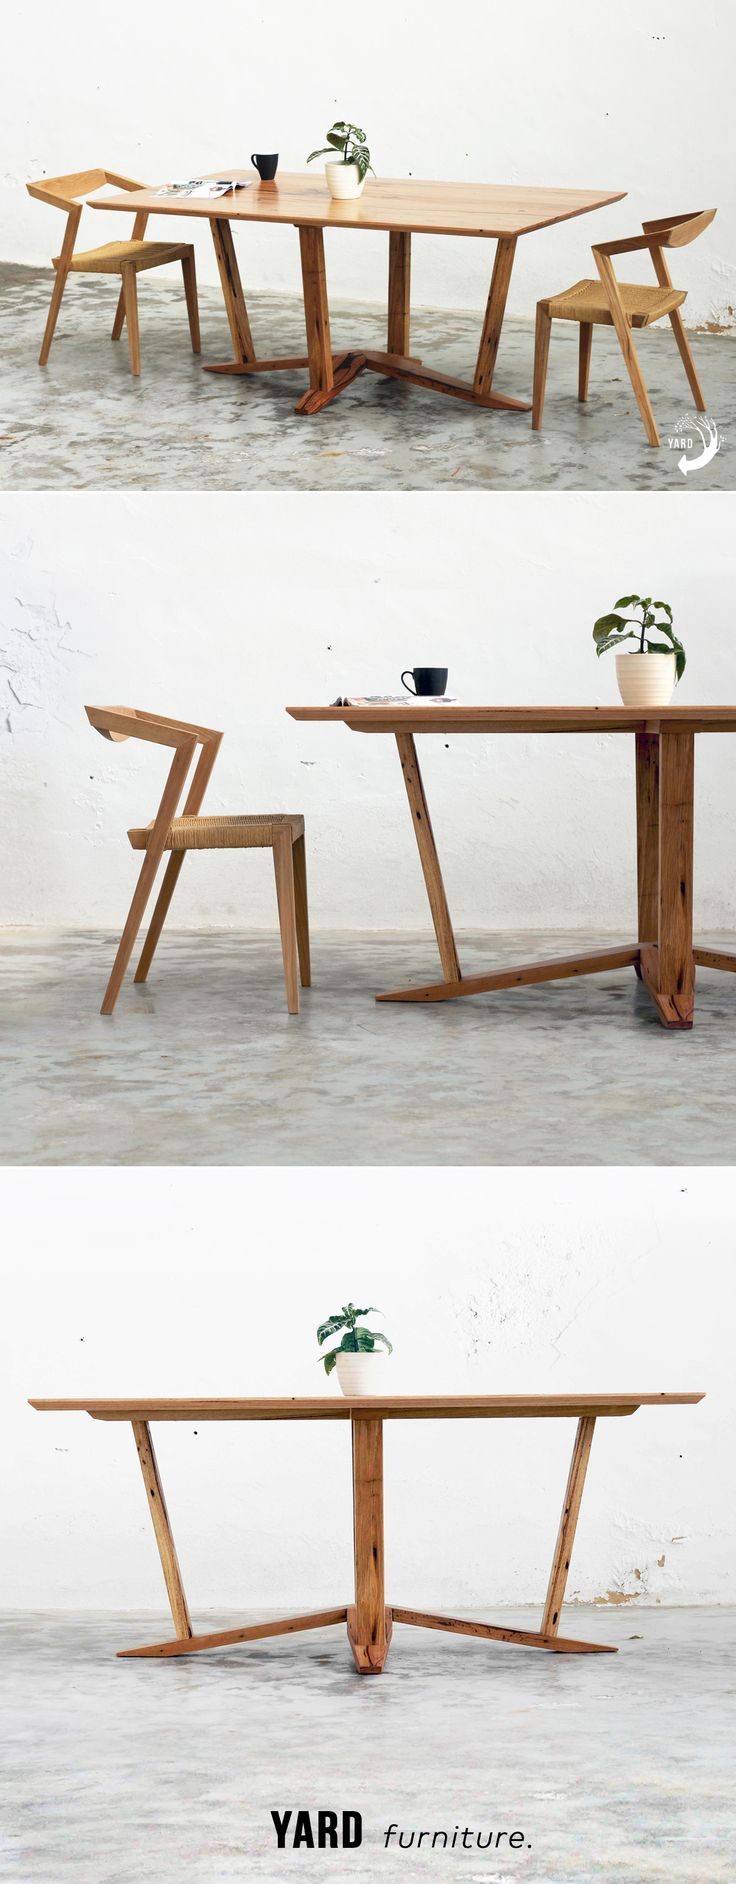 YARD furniture, custom made Lotus Dining Table from recycled, salvaged hardwoods. Made in Melbourne. Modernist and minimalist influences.